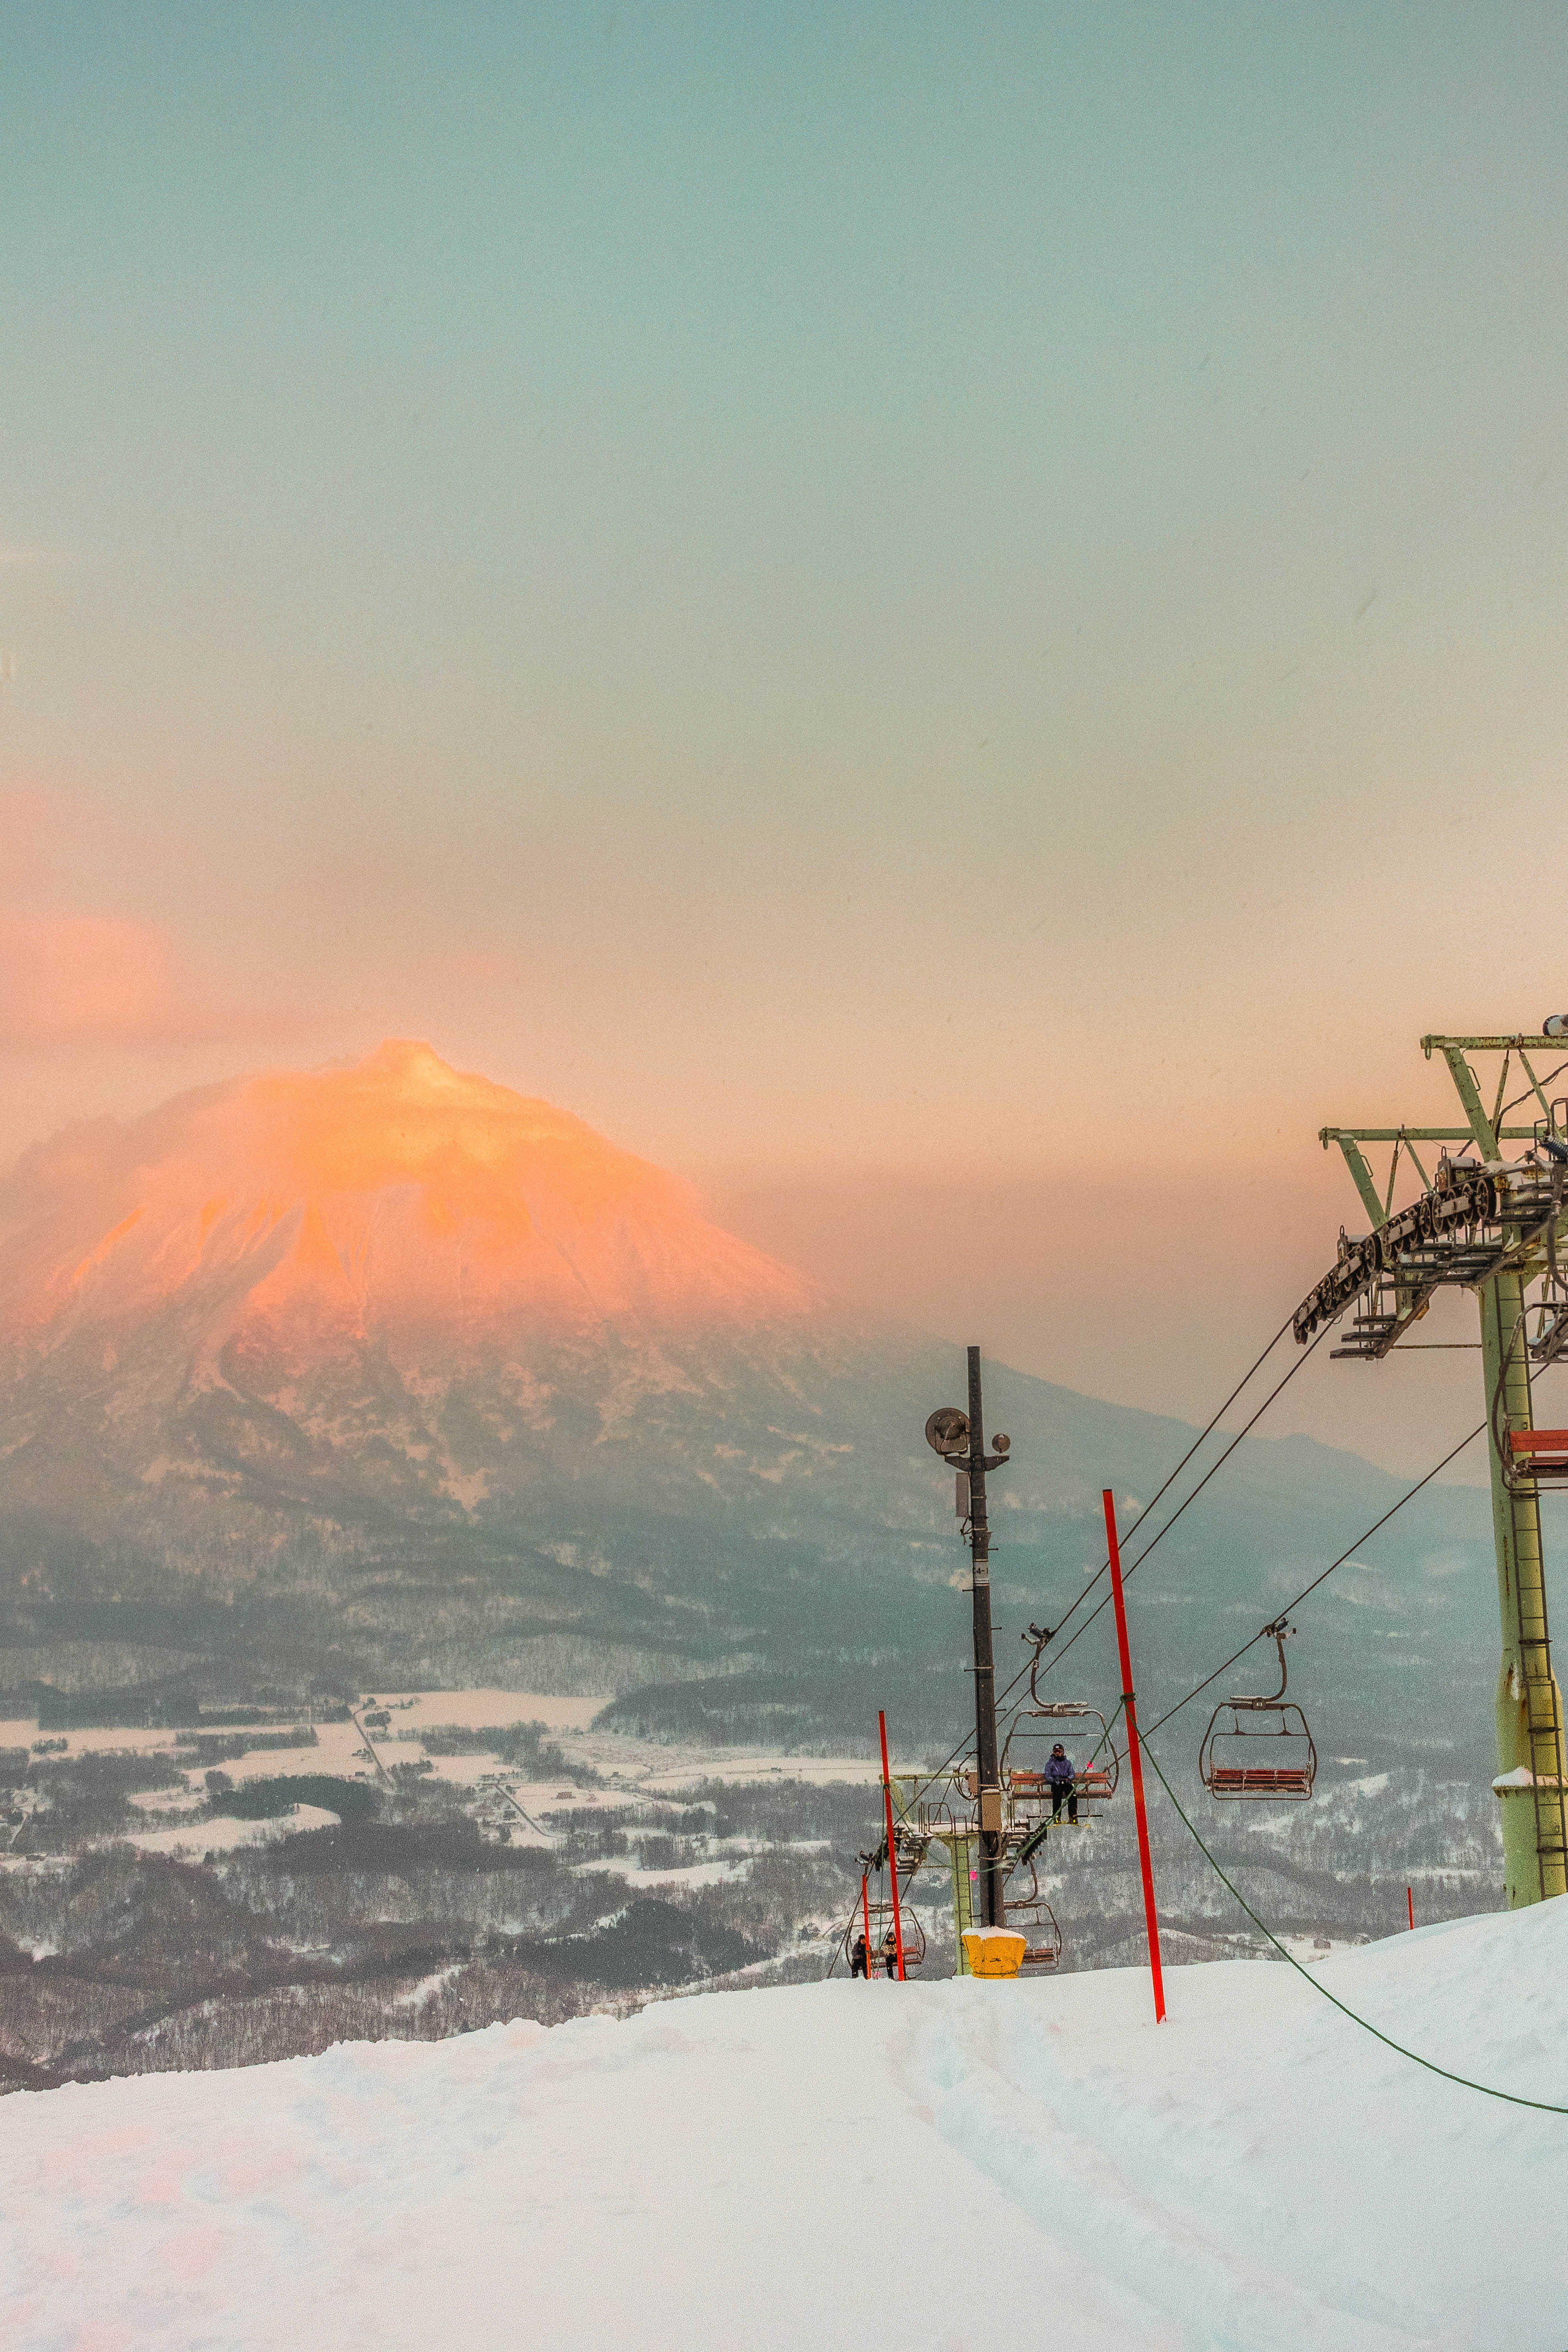 Chairlifts at Niseko